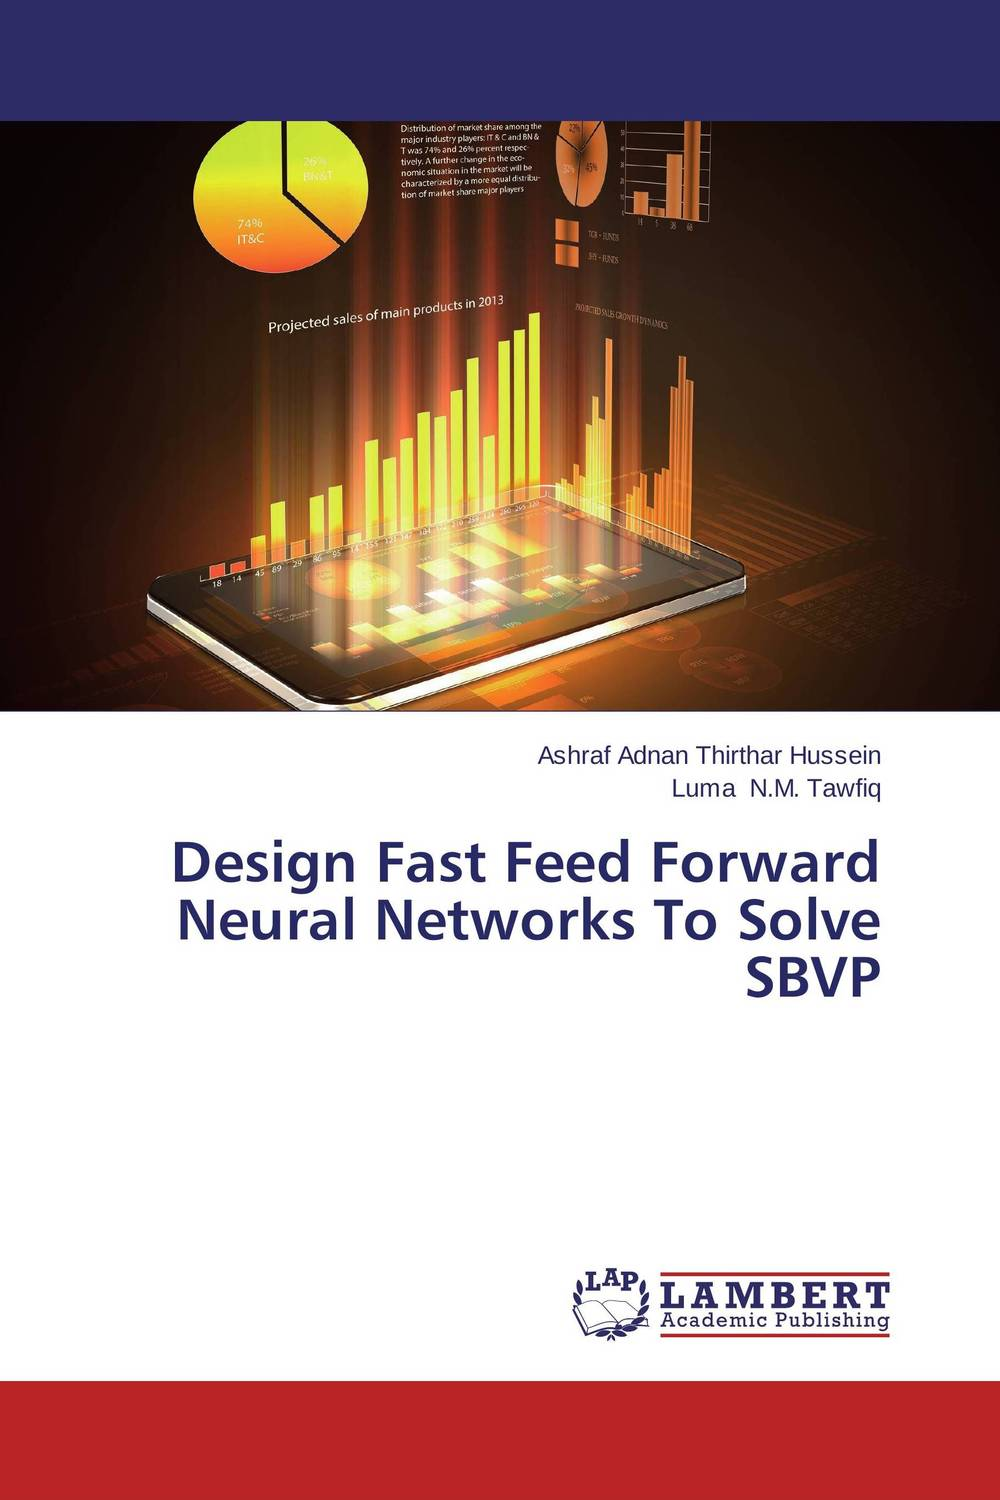 Design Fast Feed Forward Neural Networks To Solve SBVP